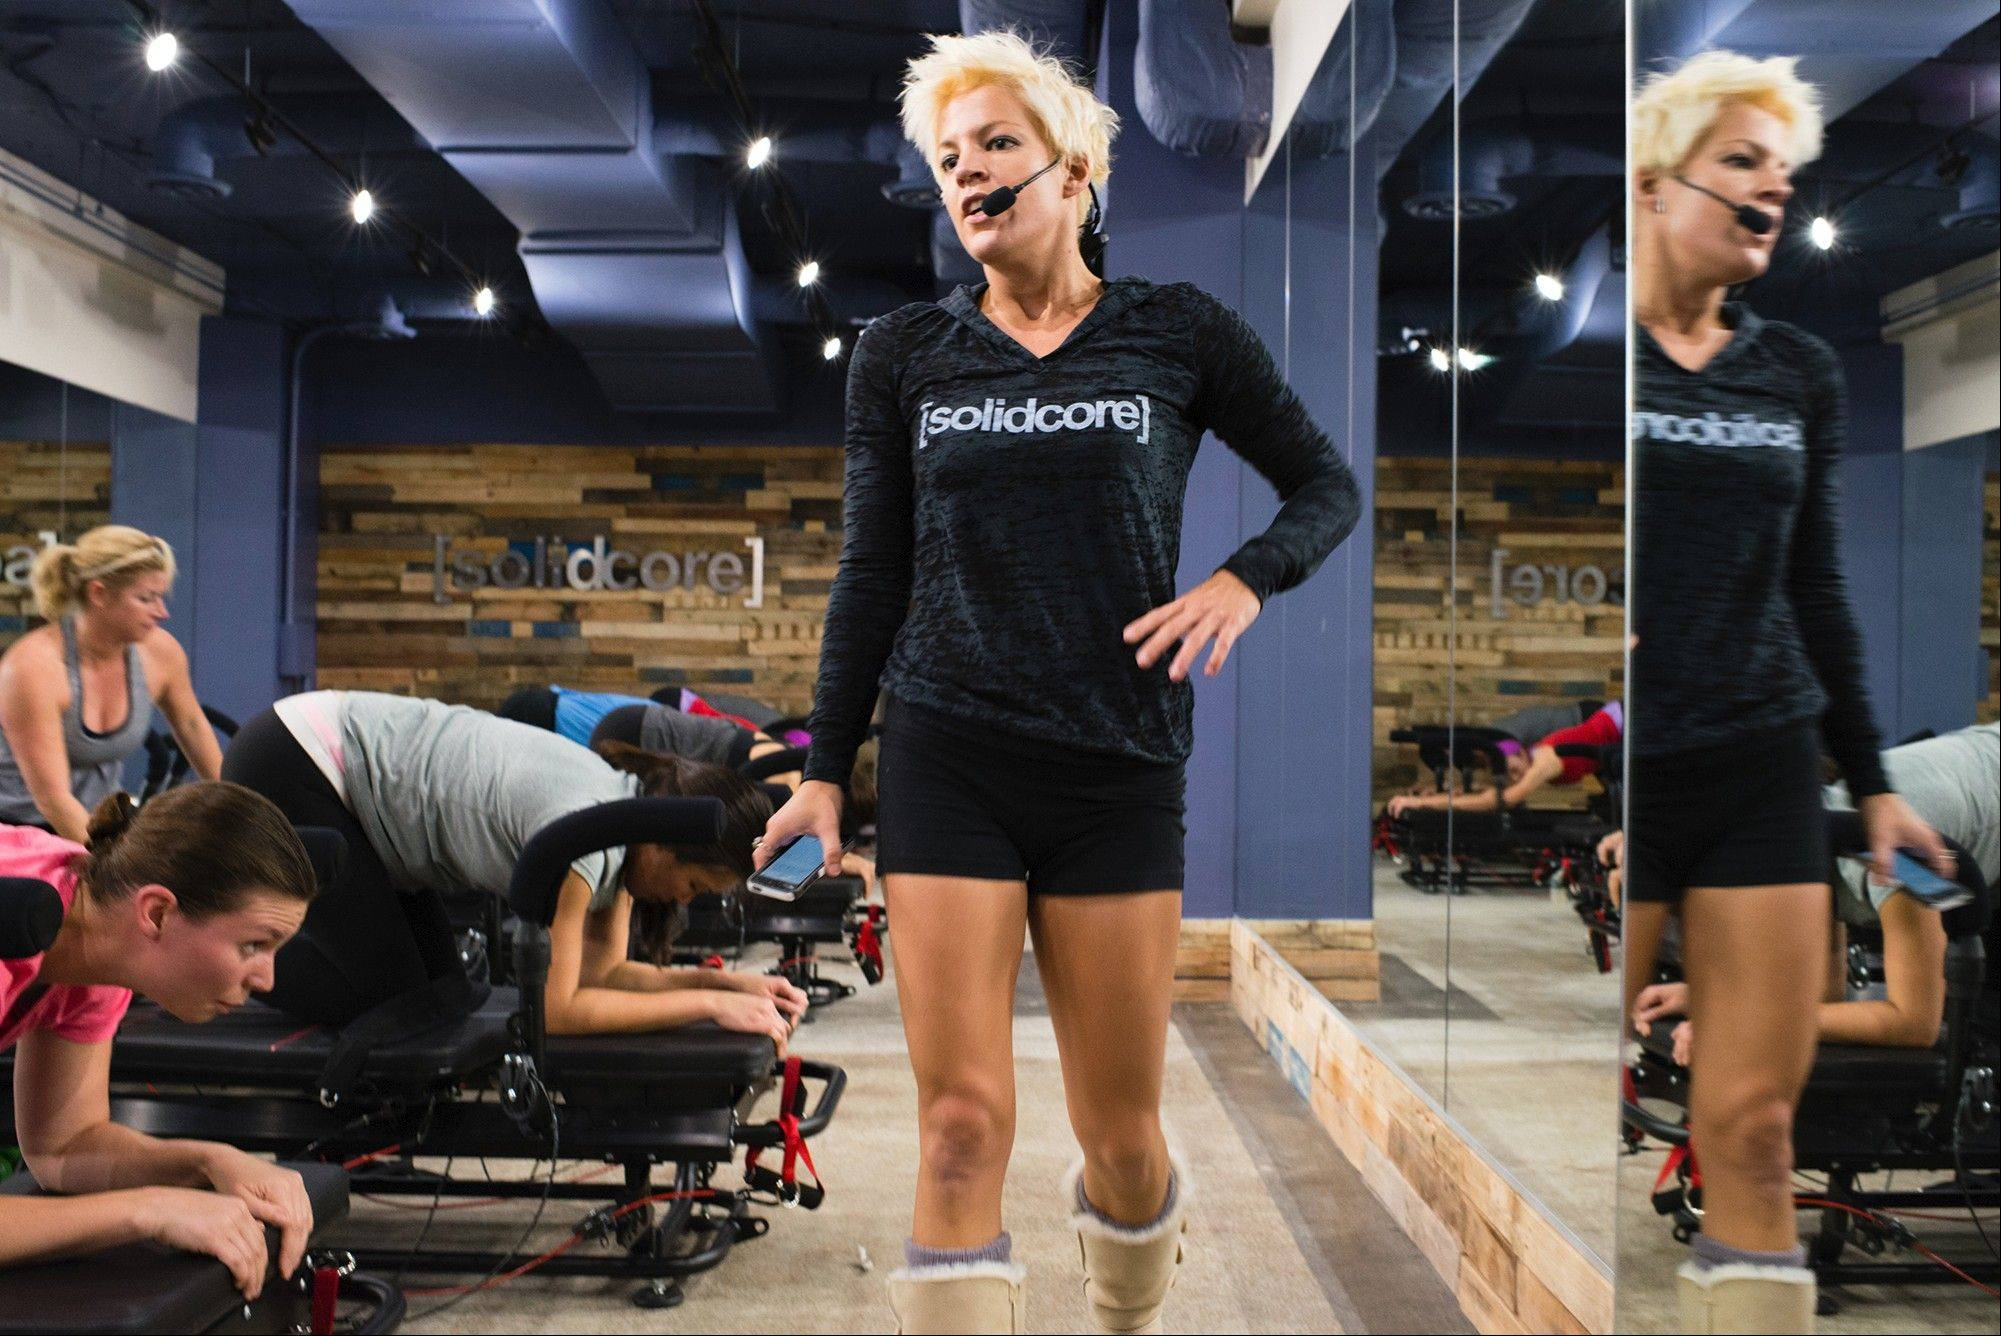 "Anne Mahlum founded a nonprofit organization that helped inspire homeless people. Now she's opening a studio with a souped-up Pilates method that leaves clients staggering. ""It's all about feeling strong and creating a better version of yourself,"" she says."